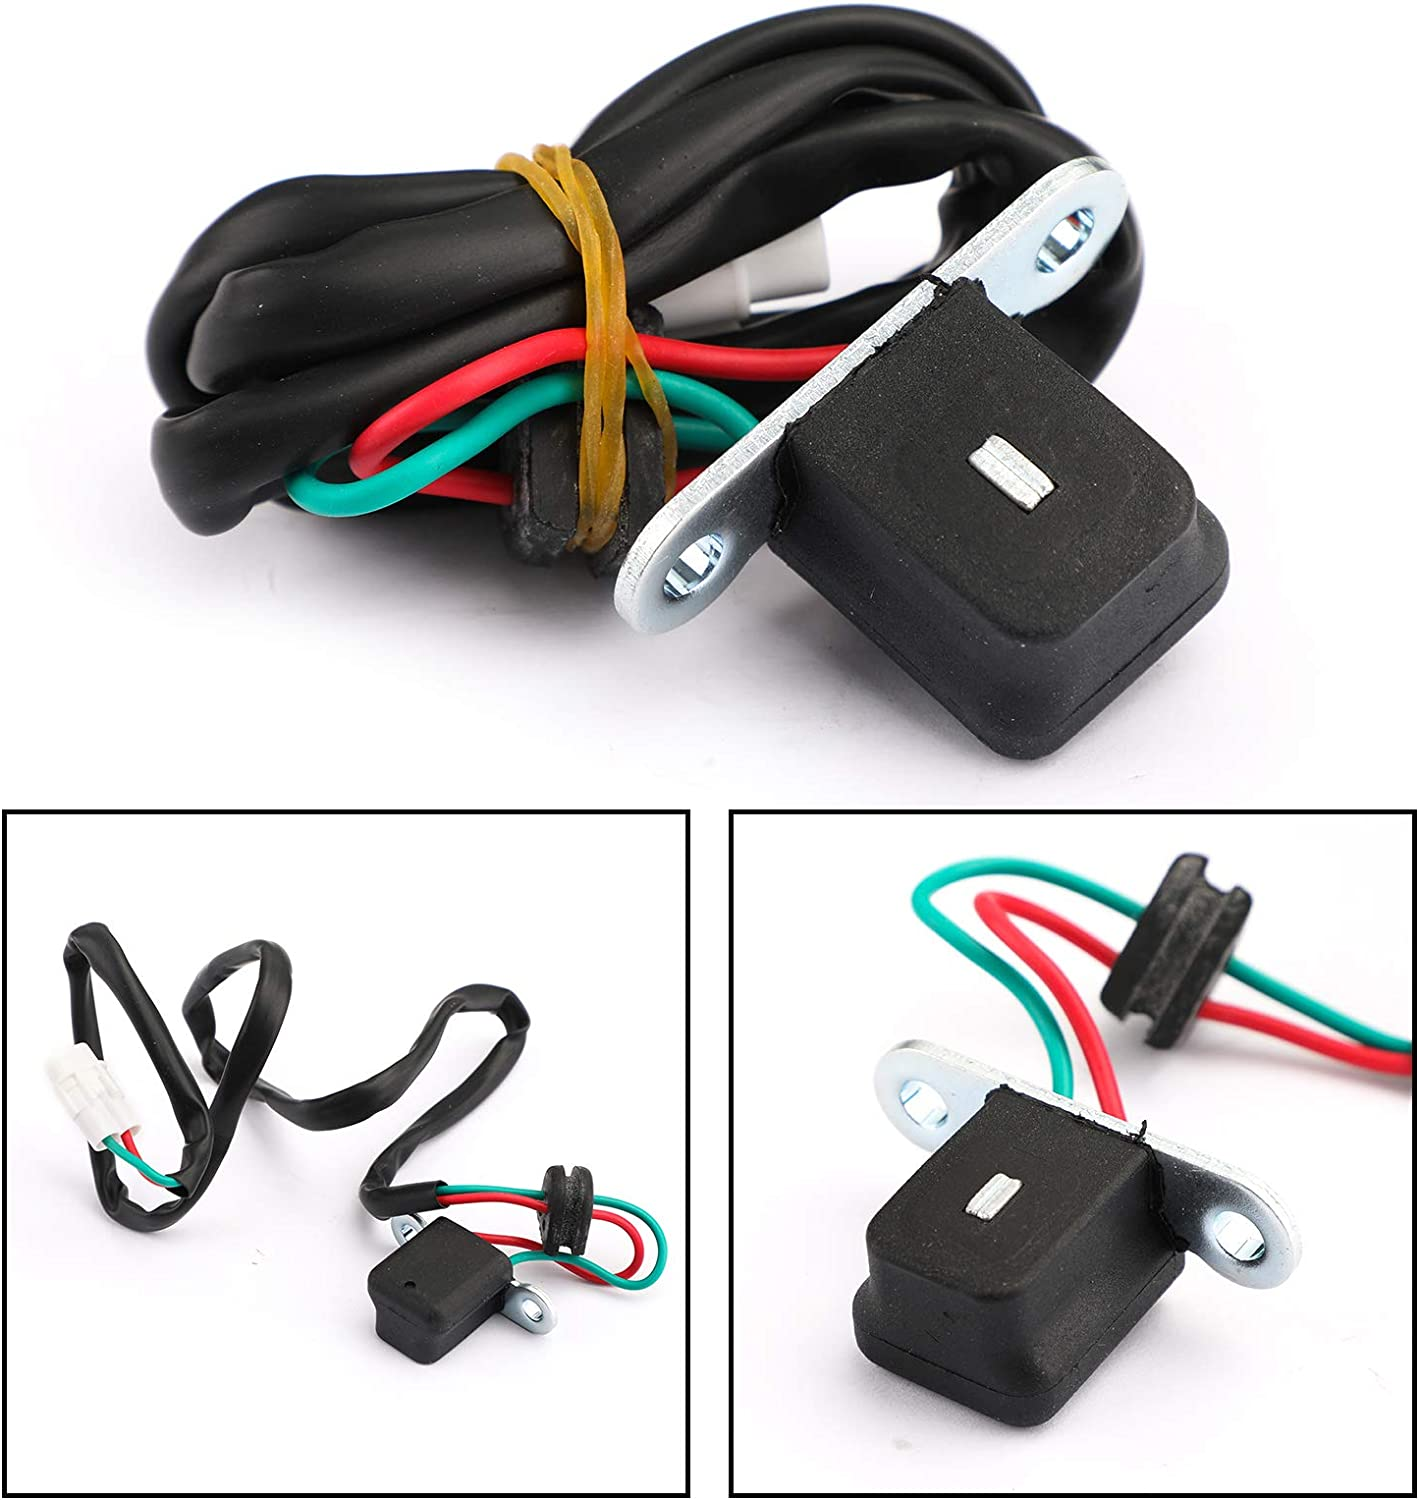 Artudatech Motorcycle Pick Up Pulsar Coil Moto Pulsing Coil Ignition Pickup For K T M Exc Xcf Xcw Sx Sxf 250 300 400 450 525 530 Auto